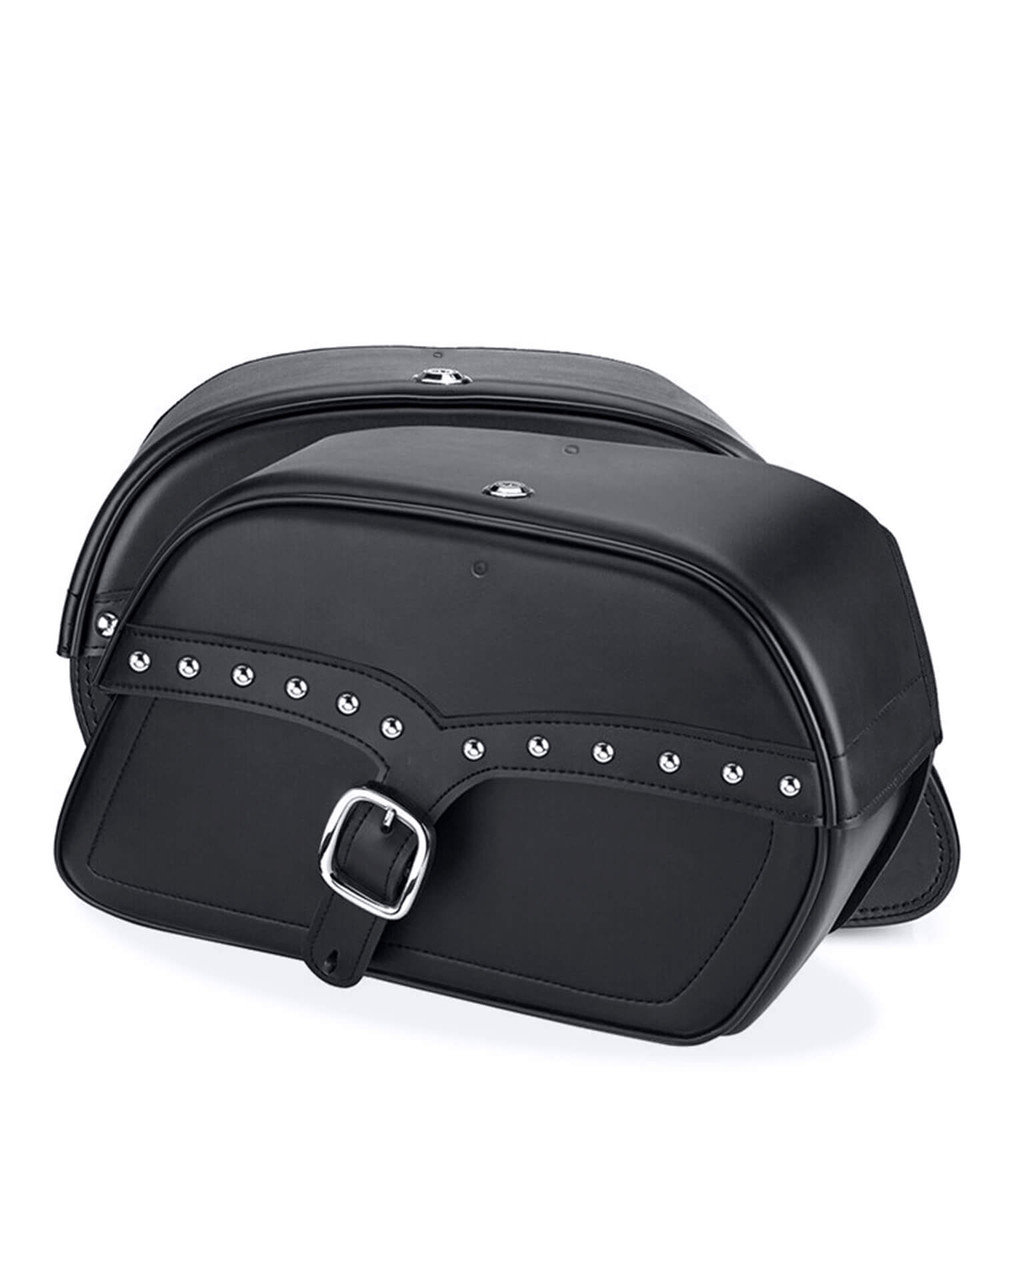 Viking Charger Single Strap Studded Large Motorcycle Saddlebags For Harley Softail Night Train FXSTB Both Bags View